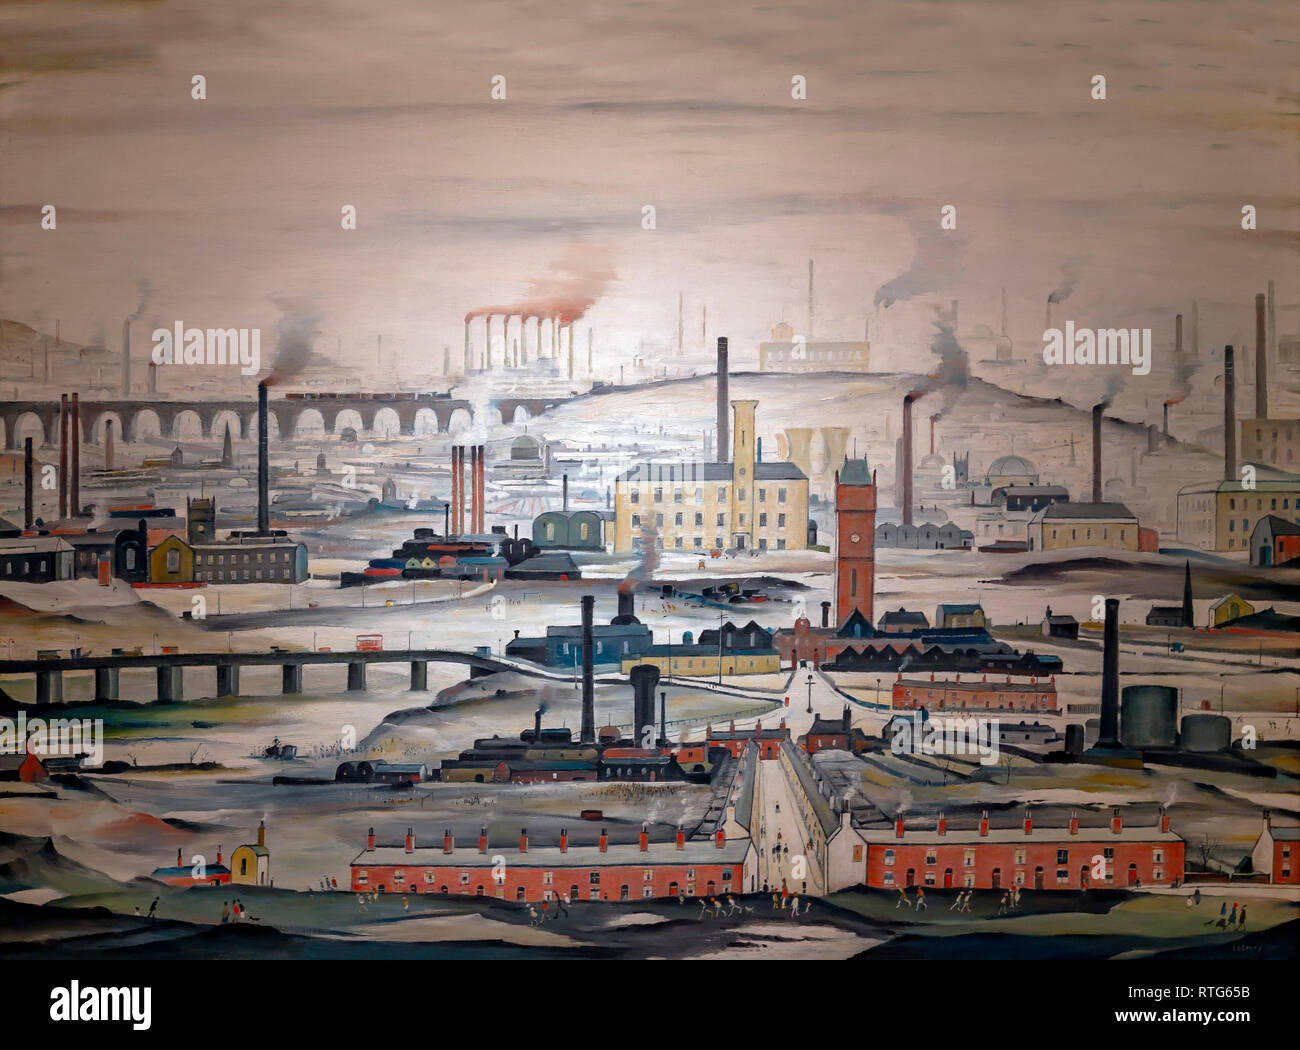 Pittore Inglese Lowry Lowry The Painter Stock Photos Lowry The Painter Stock Images